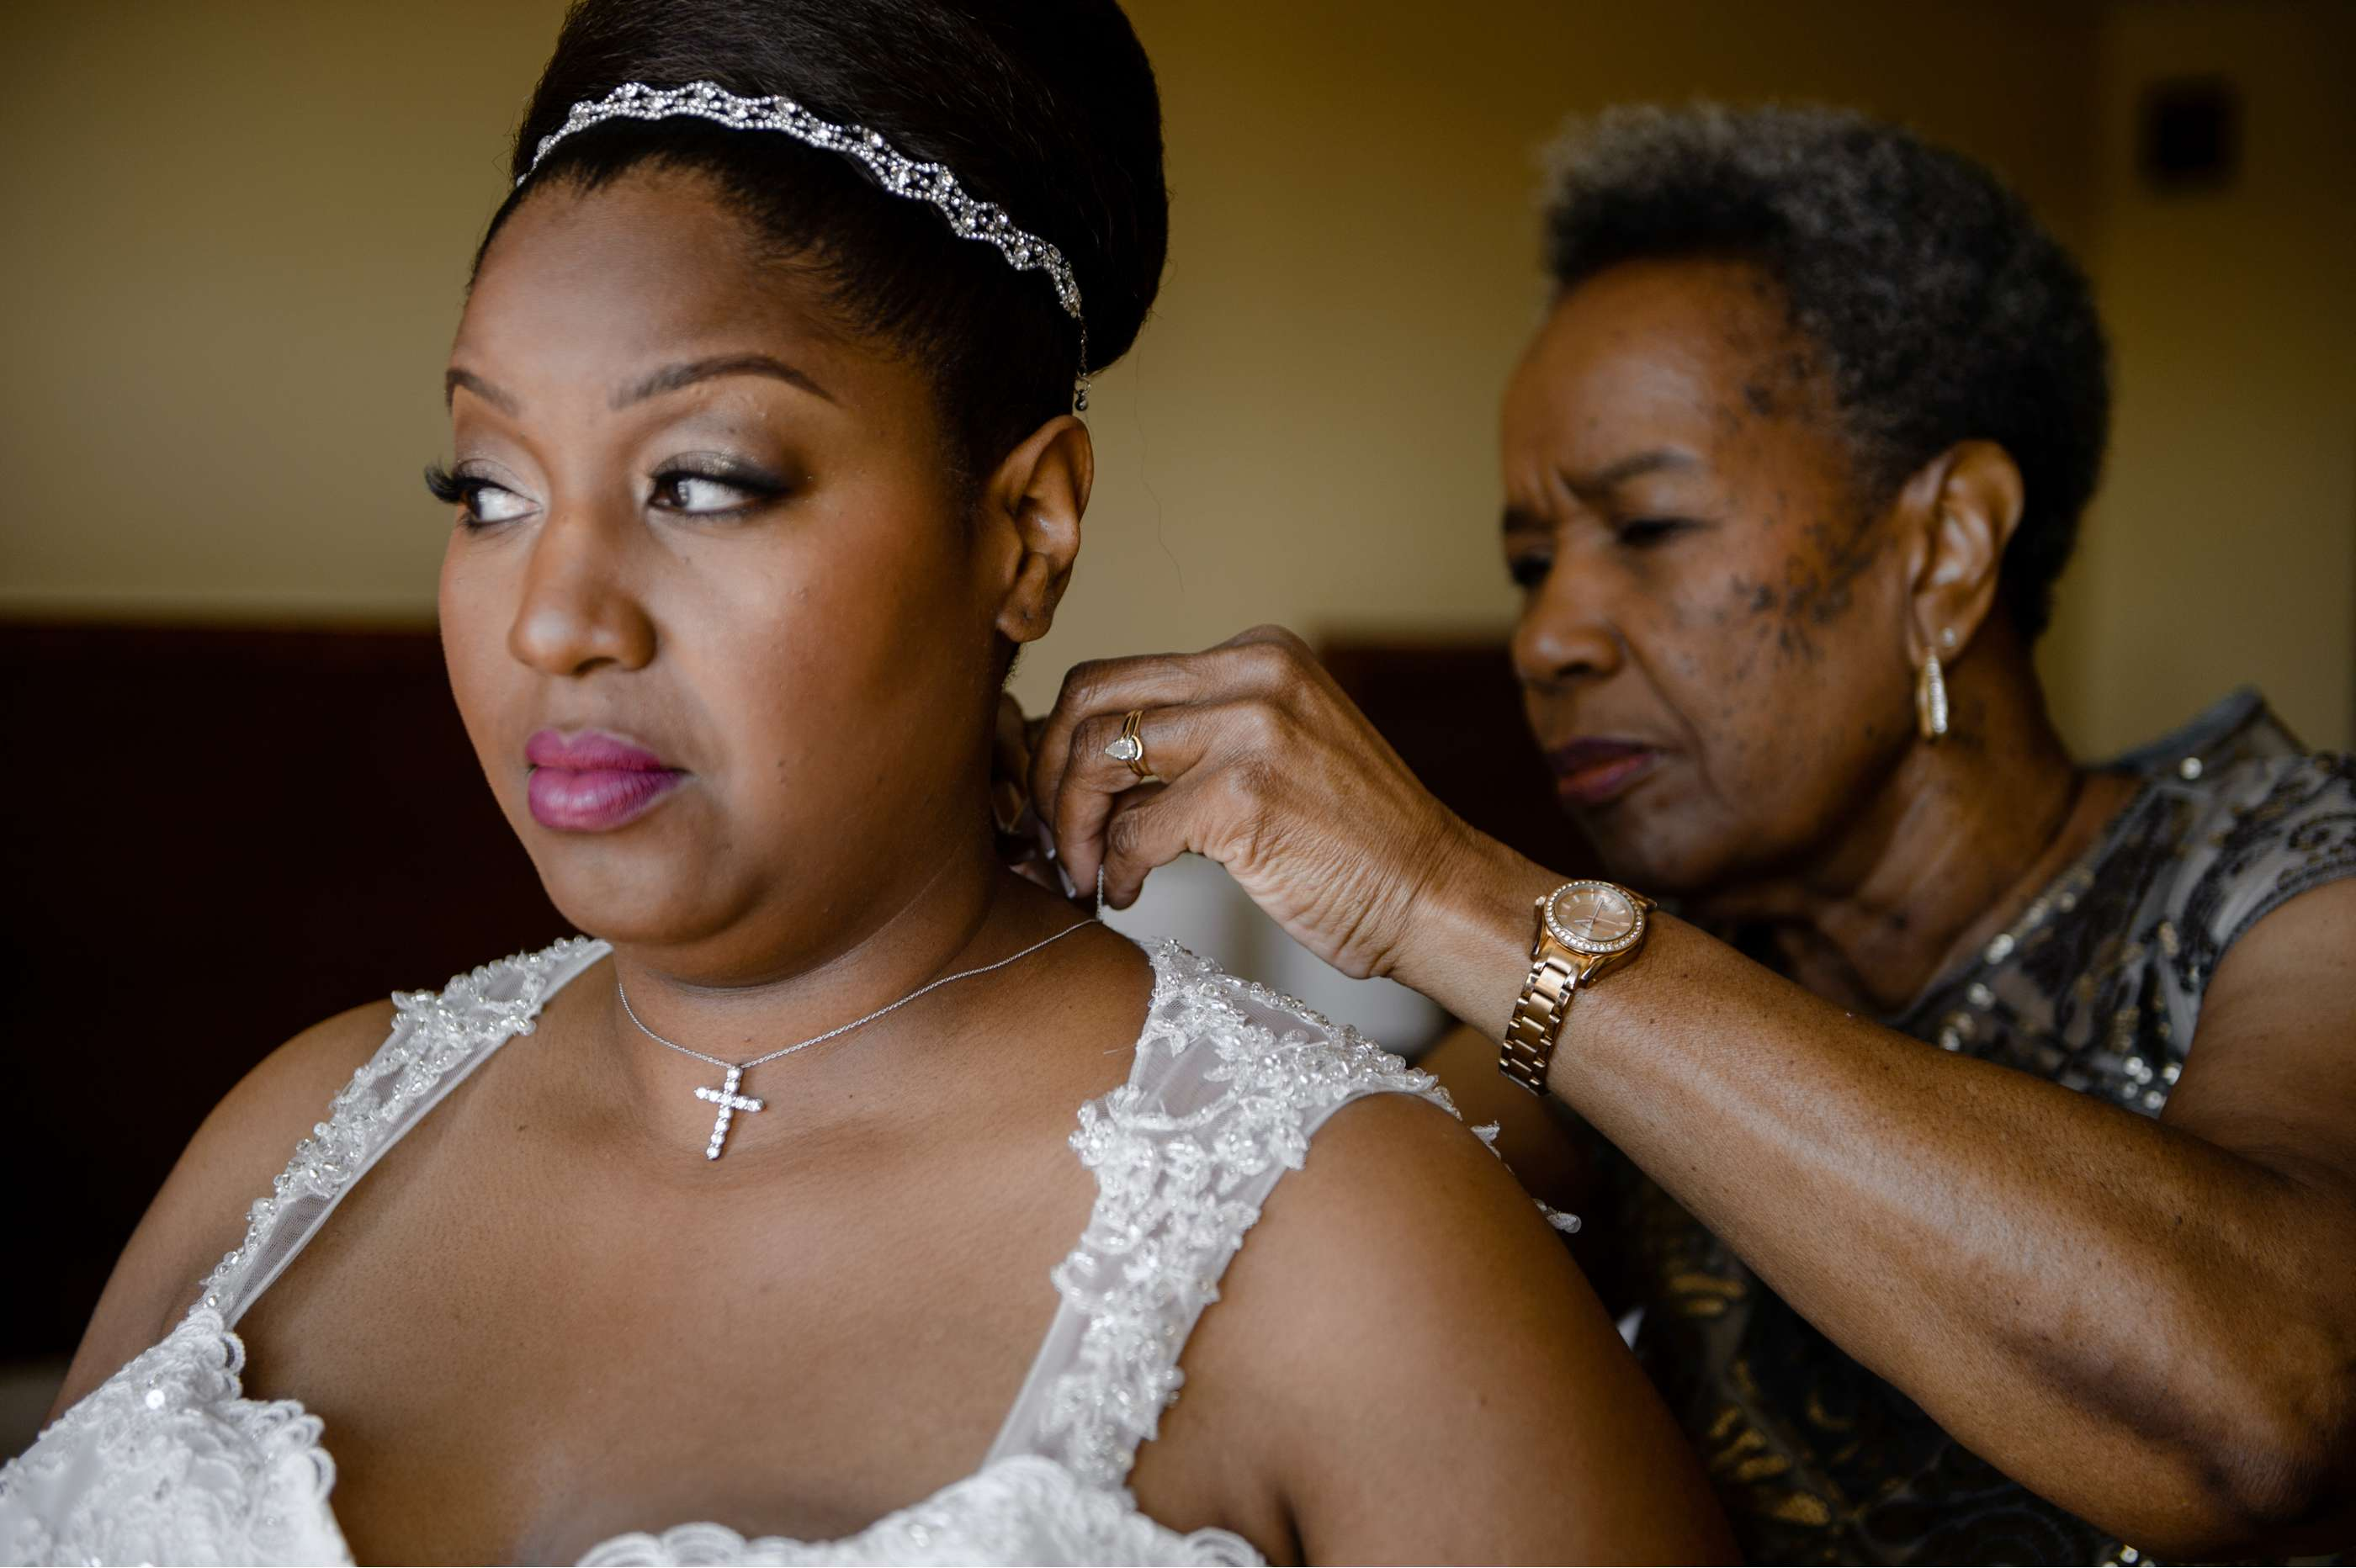 Bride Getting Ready In His Image